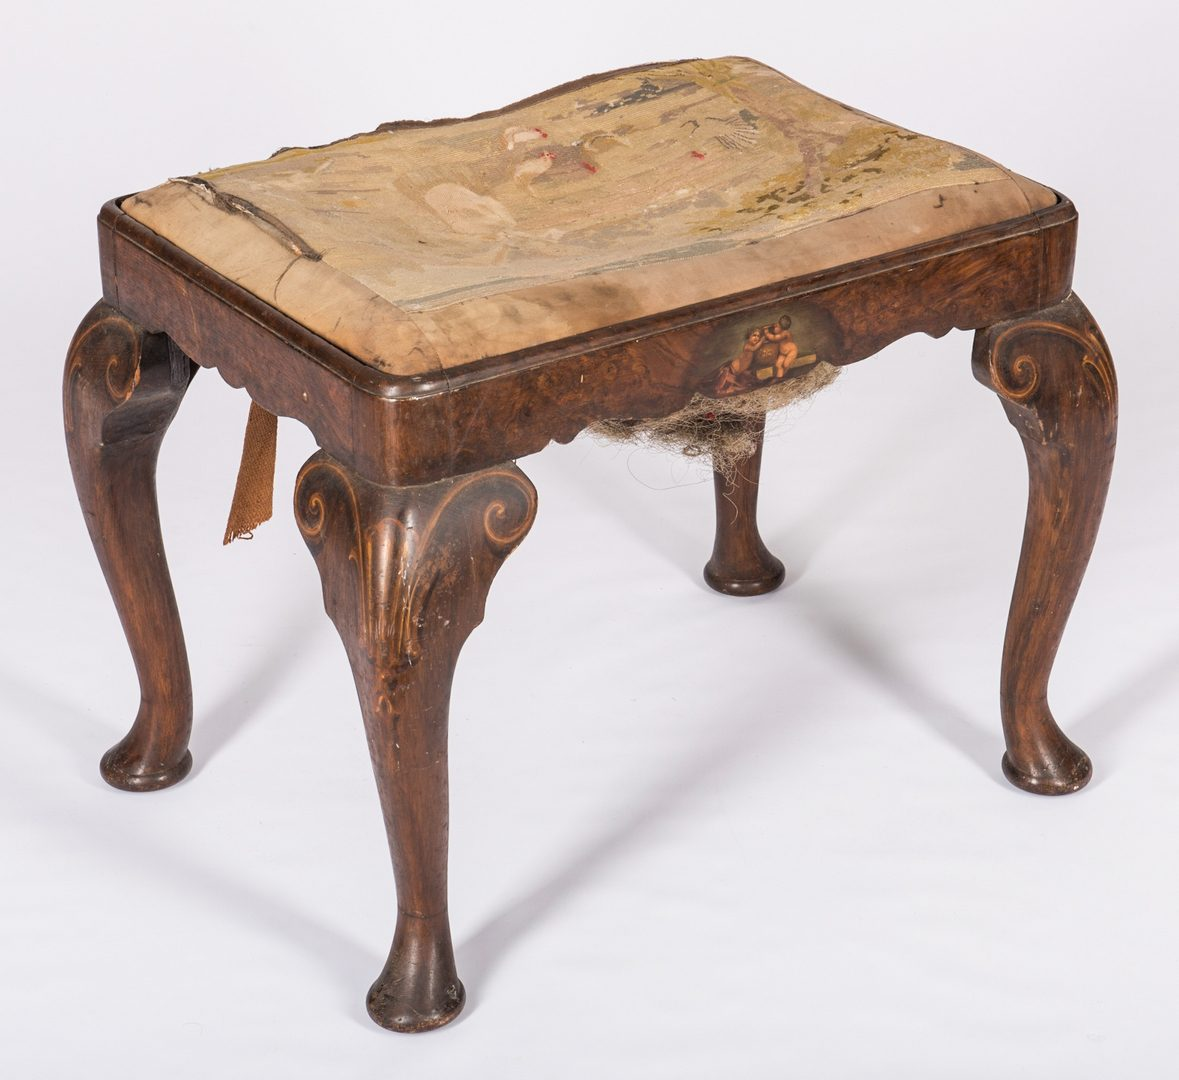 Lot 731: Continental Stool with Tapestry Seat